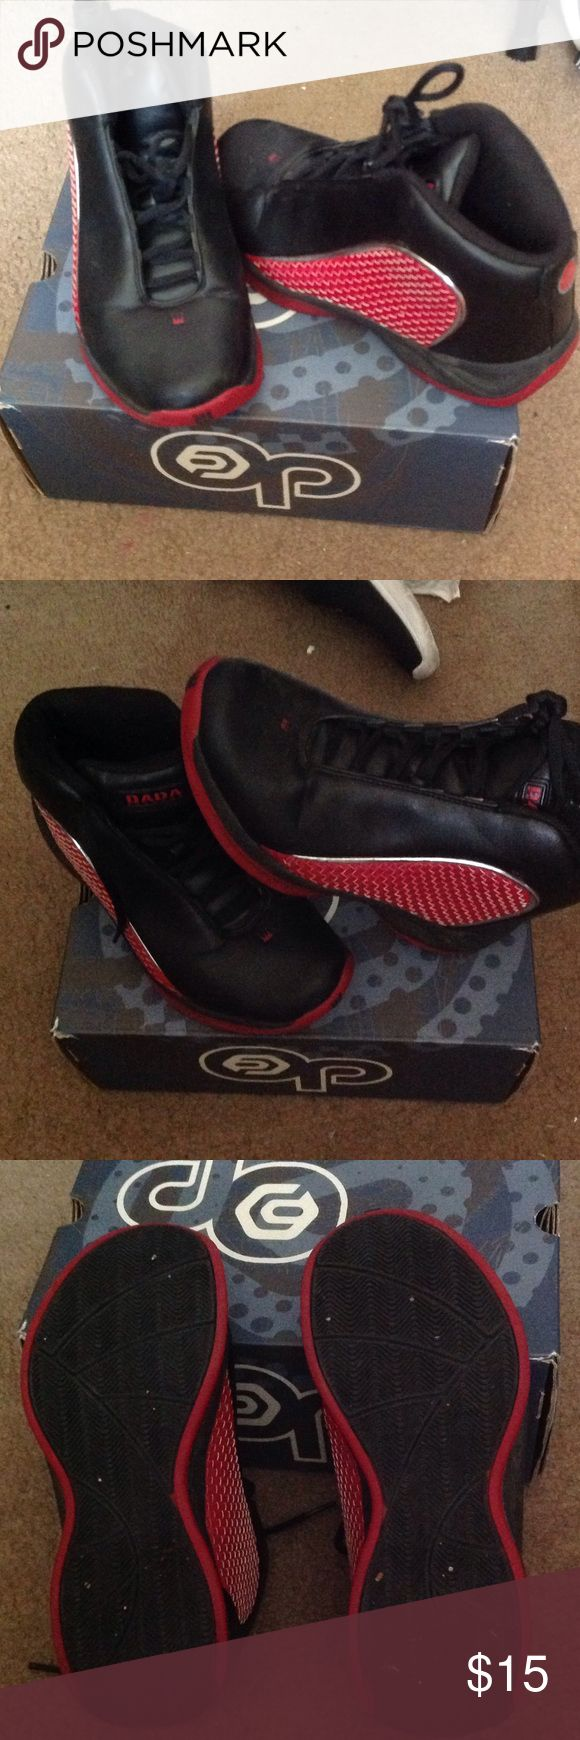 DADA men's size 7 Current sneakers Used with box Black & red sneakers size 7 USED but still in good condition with box from Big 5 sporting goods DADA Shoes Sneakers